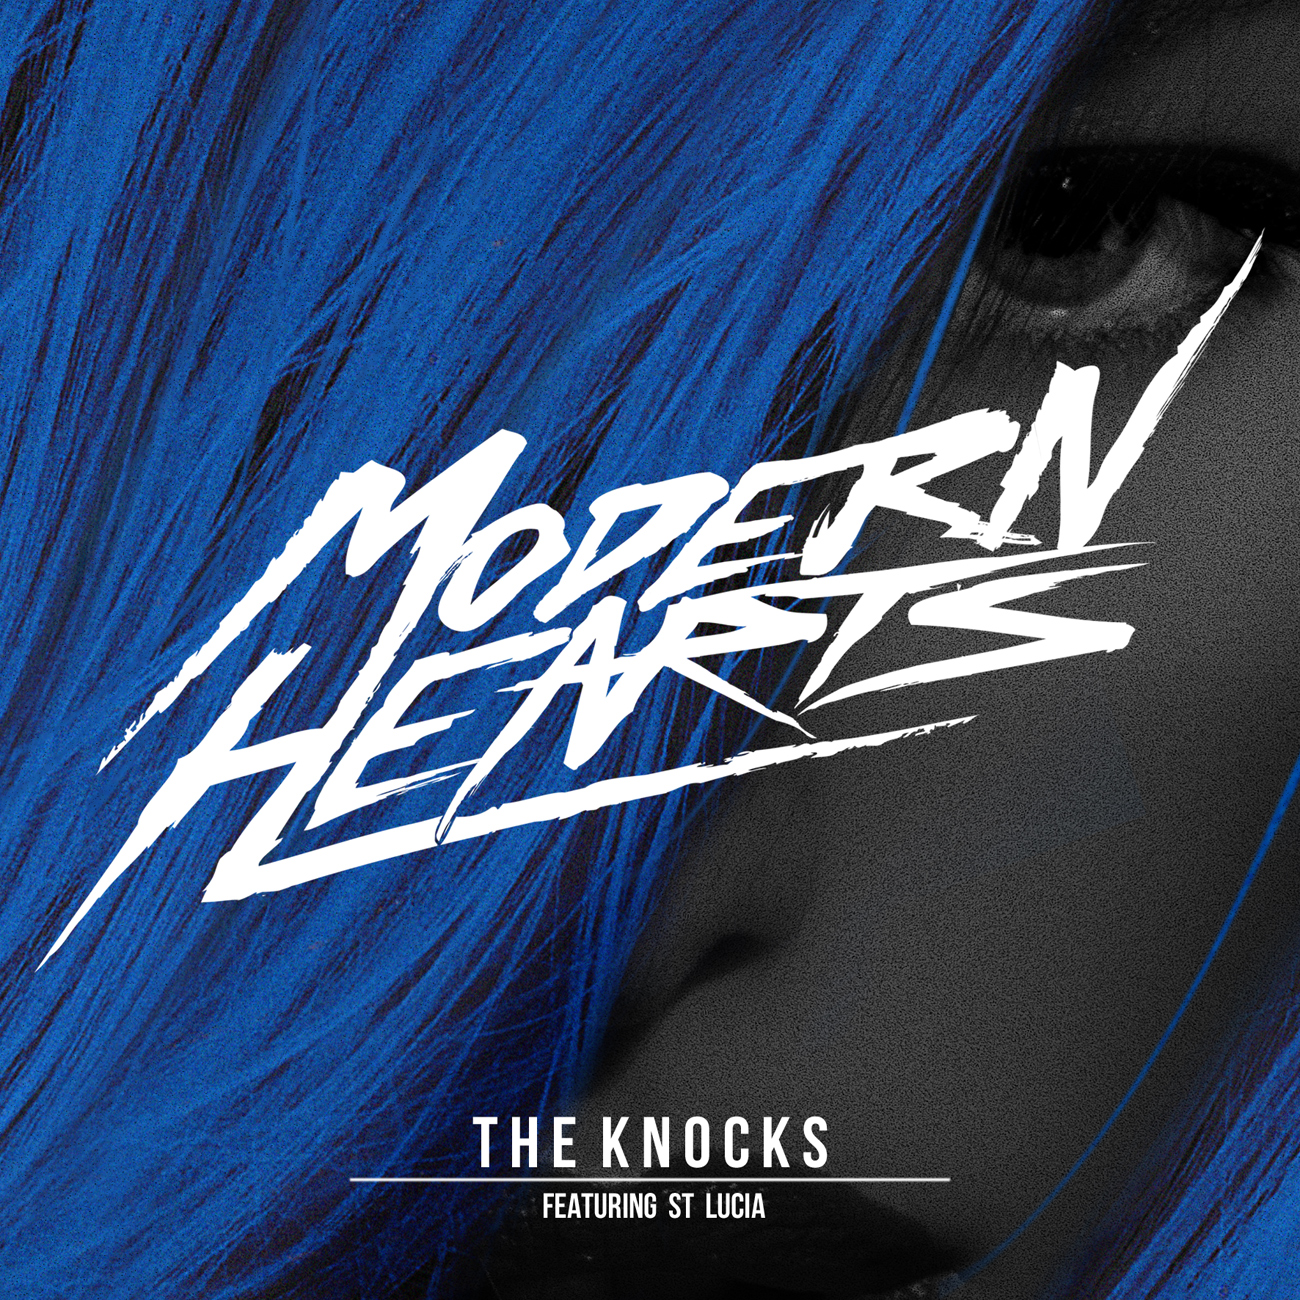 The-Knocks-Modern-Hearts-2013-1300x1300